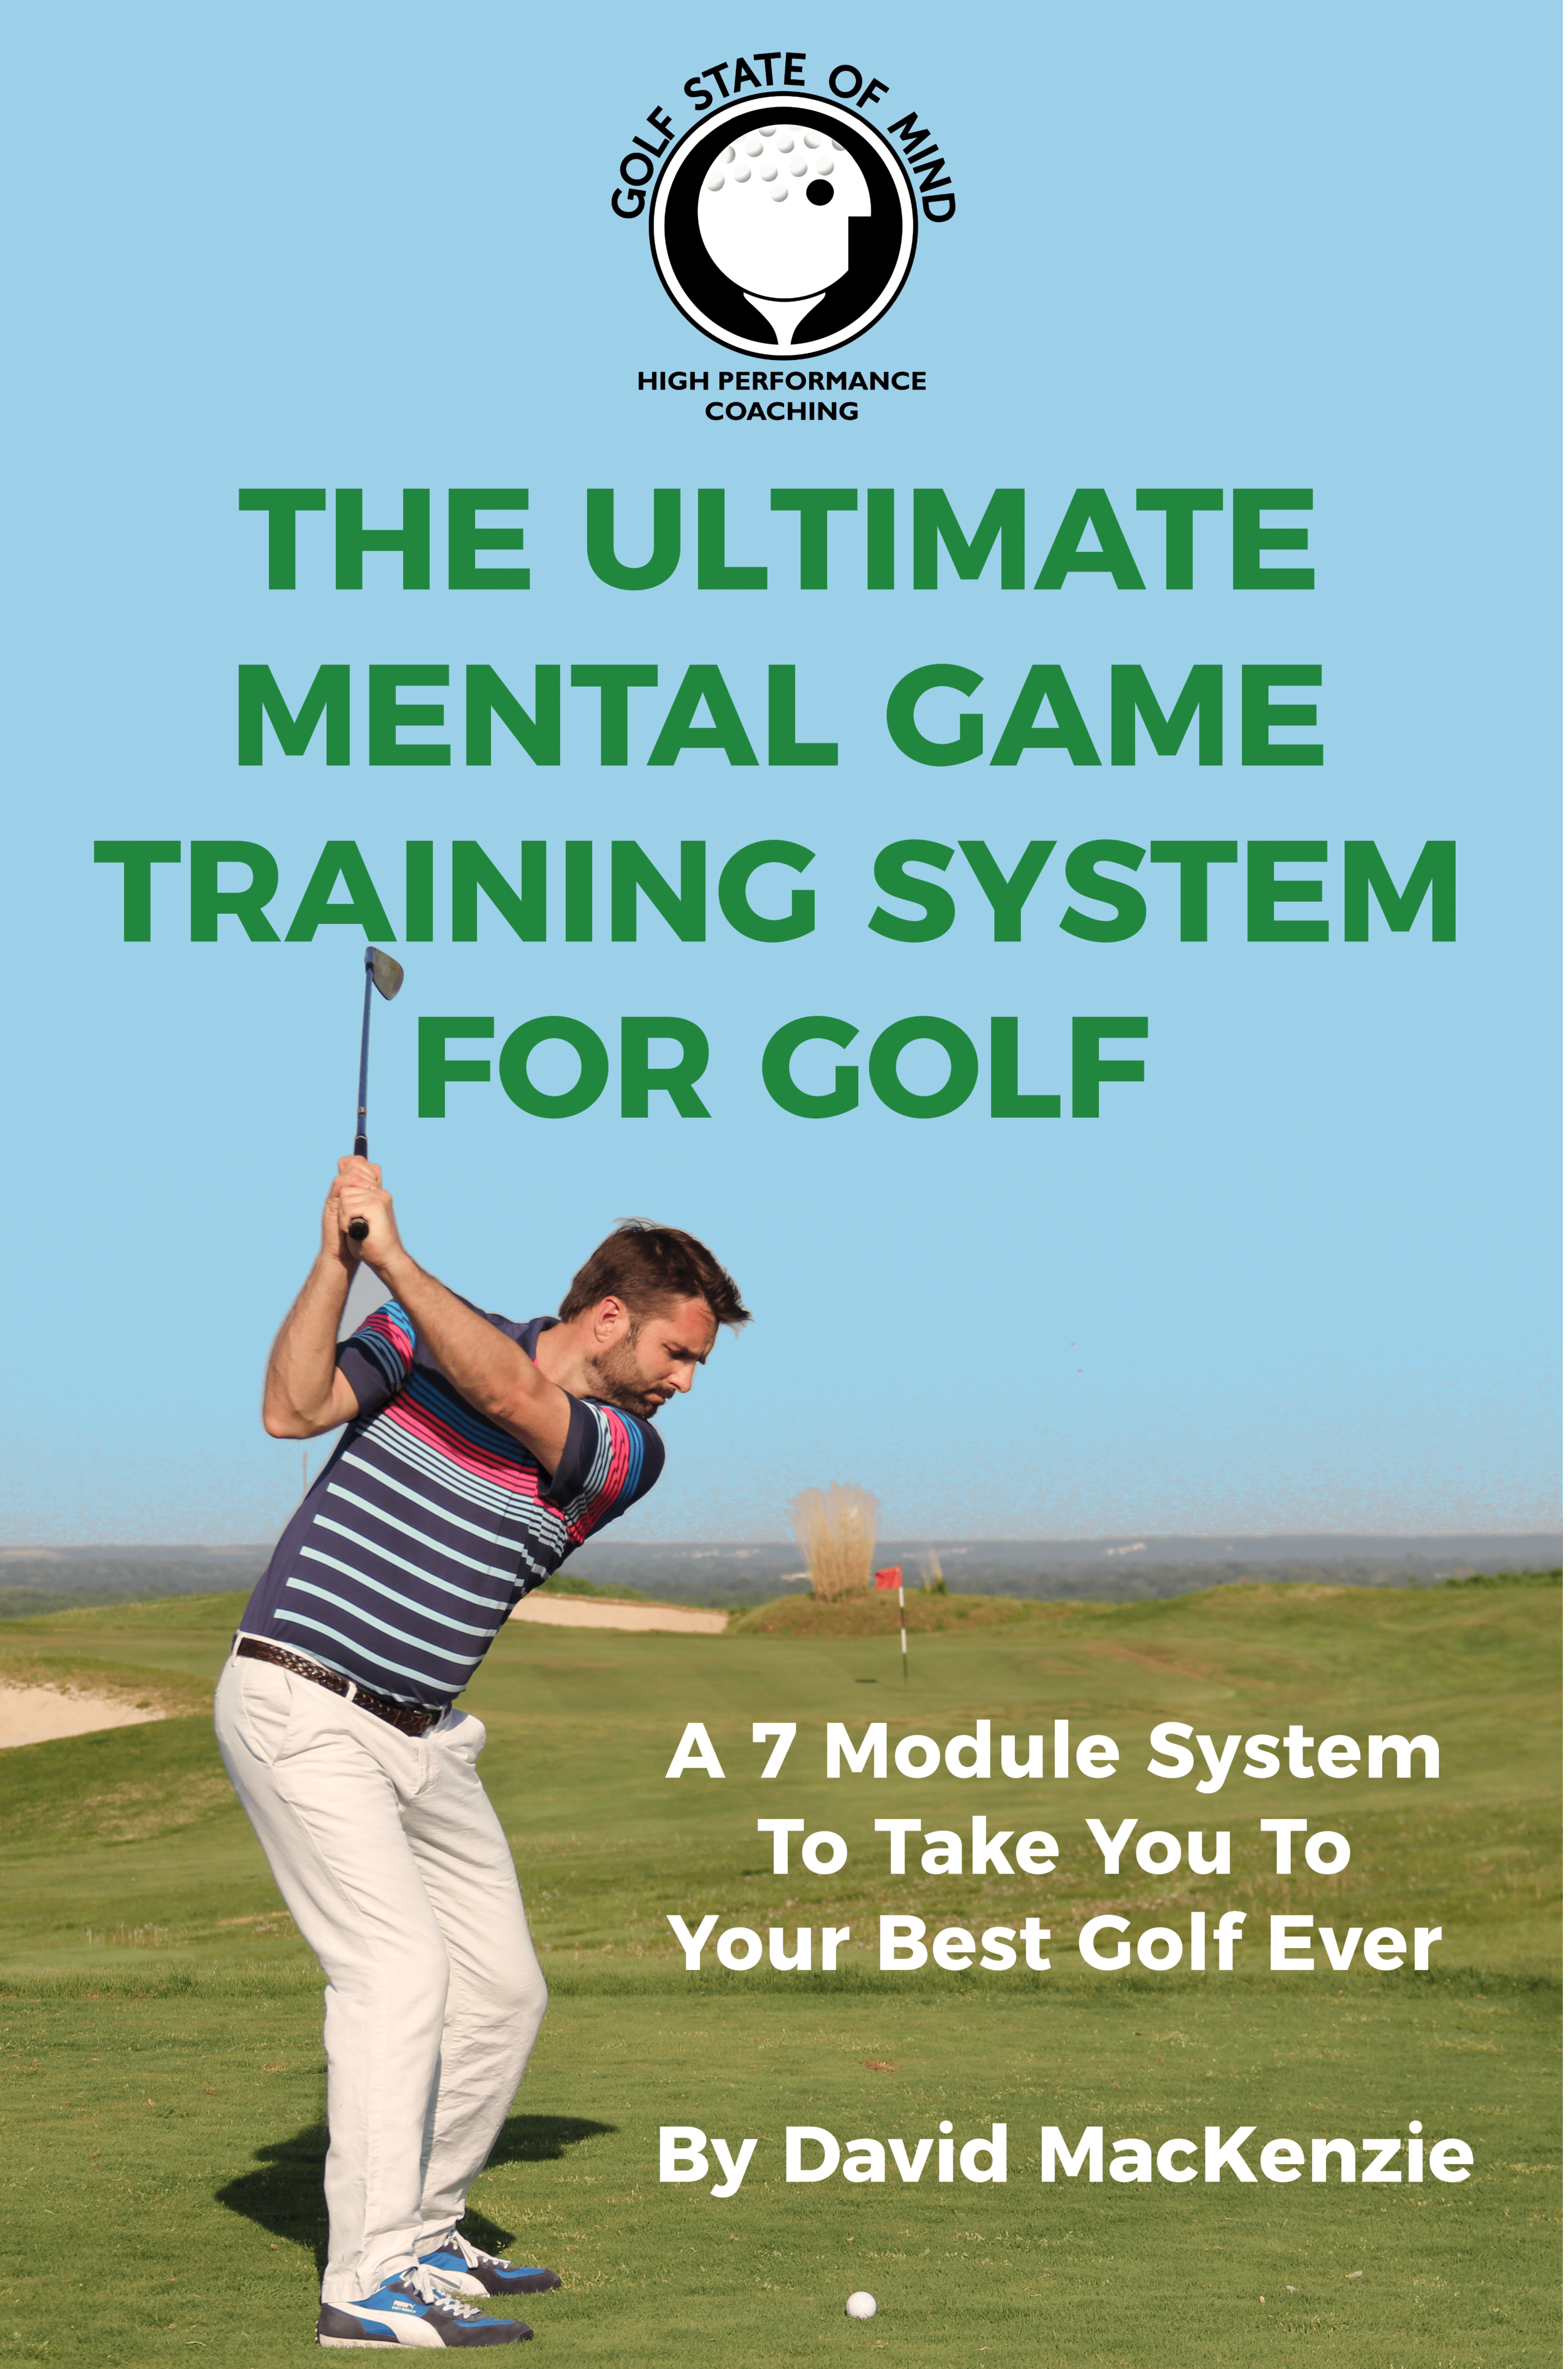 Seven Great Golf Tips – Simple Steps Towards a Better Gamer